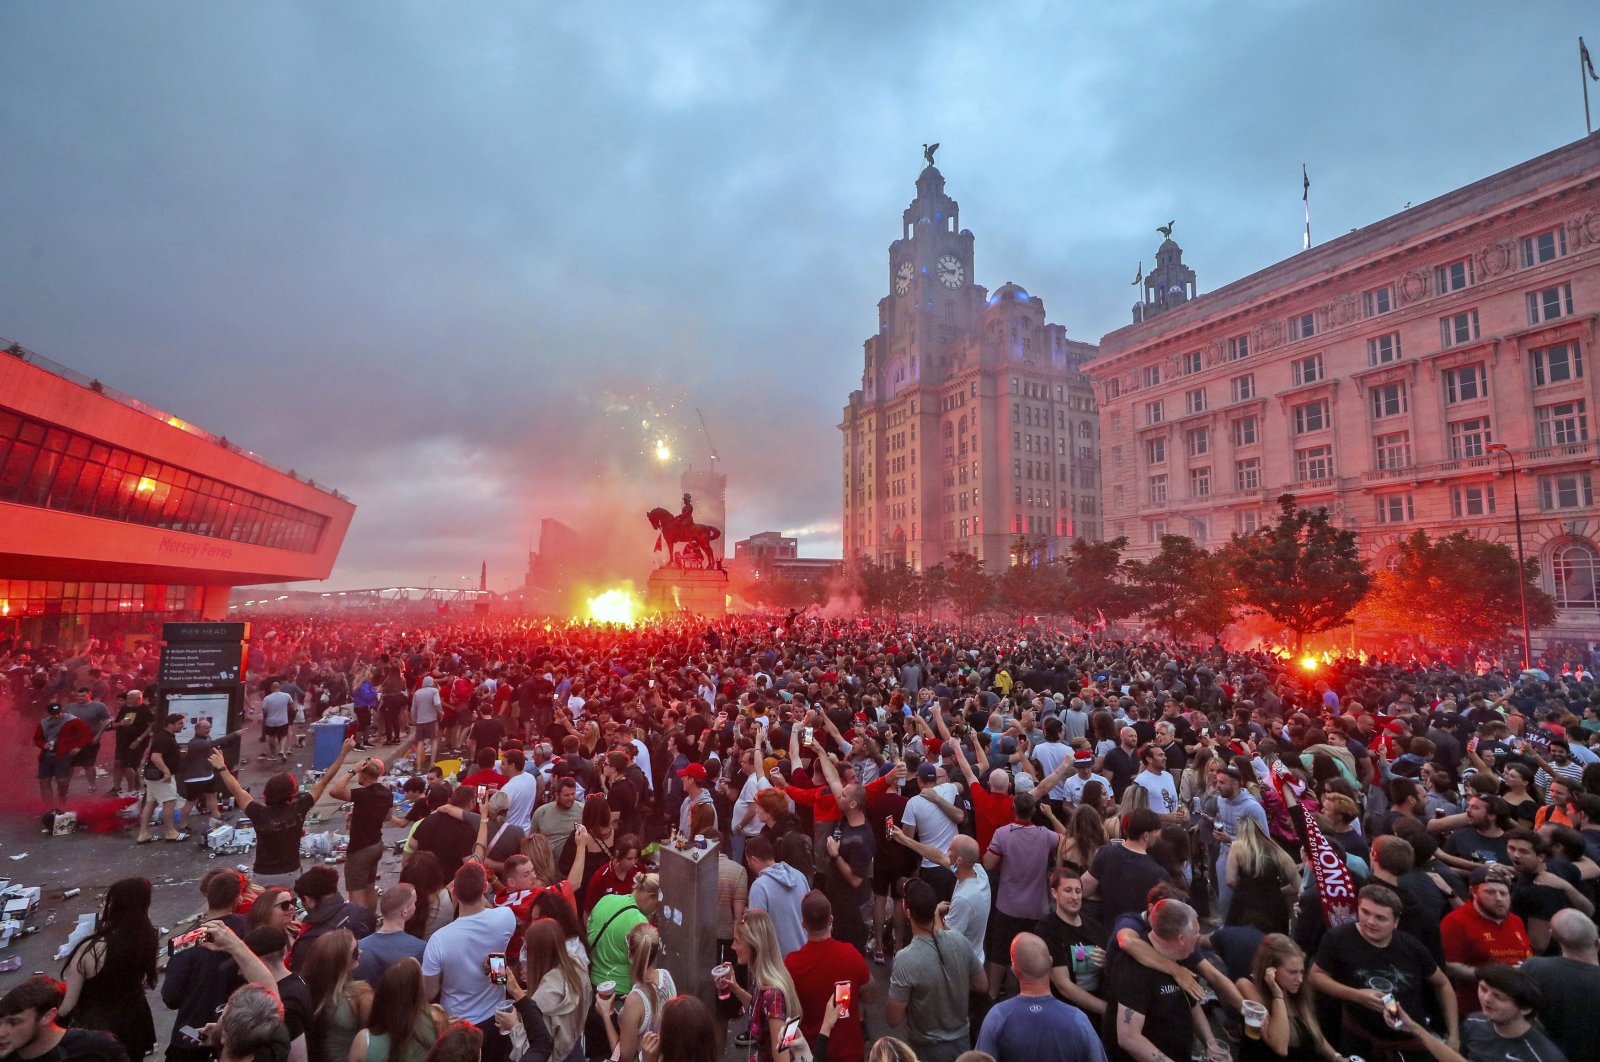 Liverpool fans let off flares outside the Liver Building in Liverpool, June 26, 2020. (AP Photo)